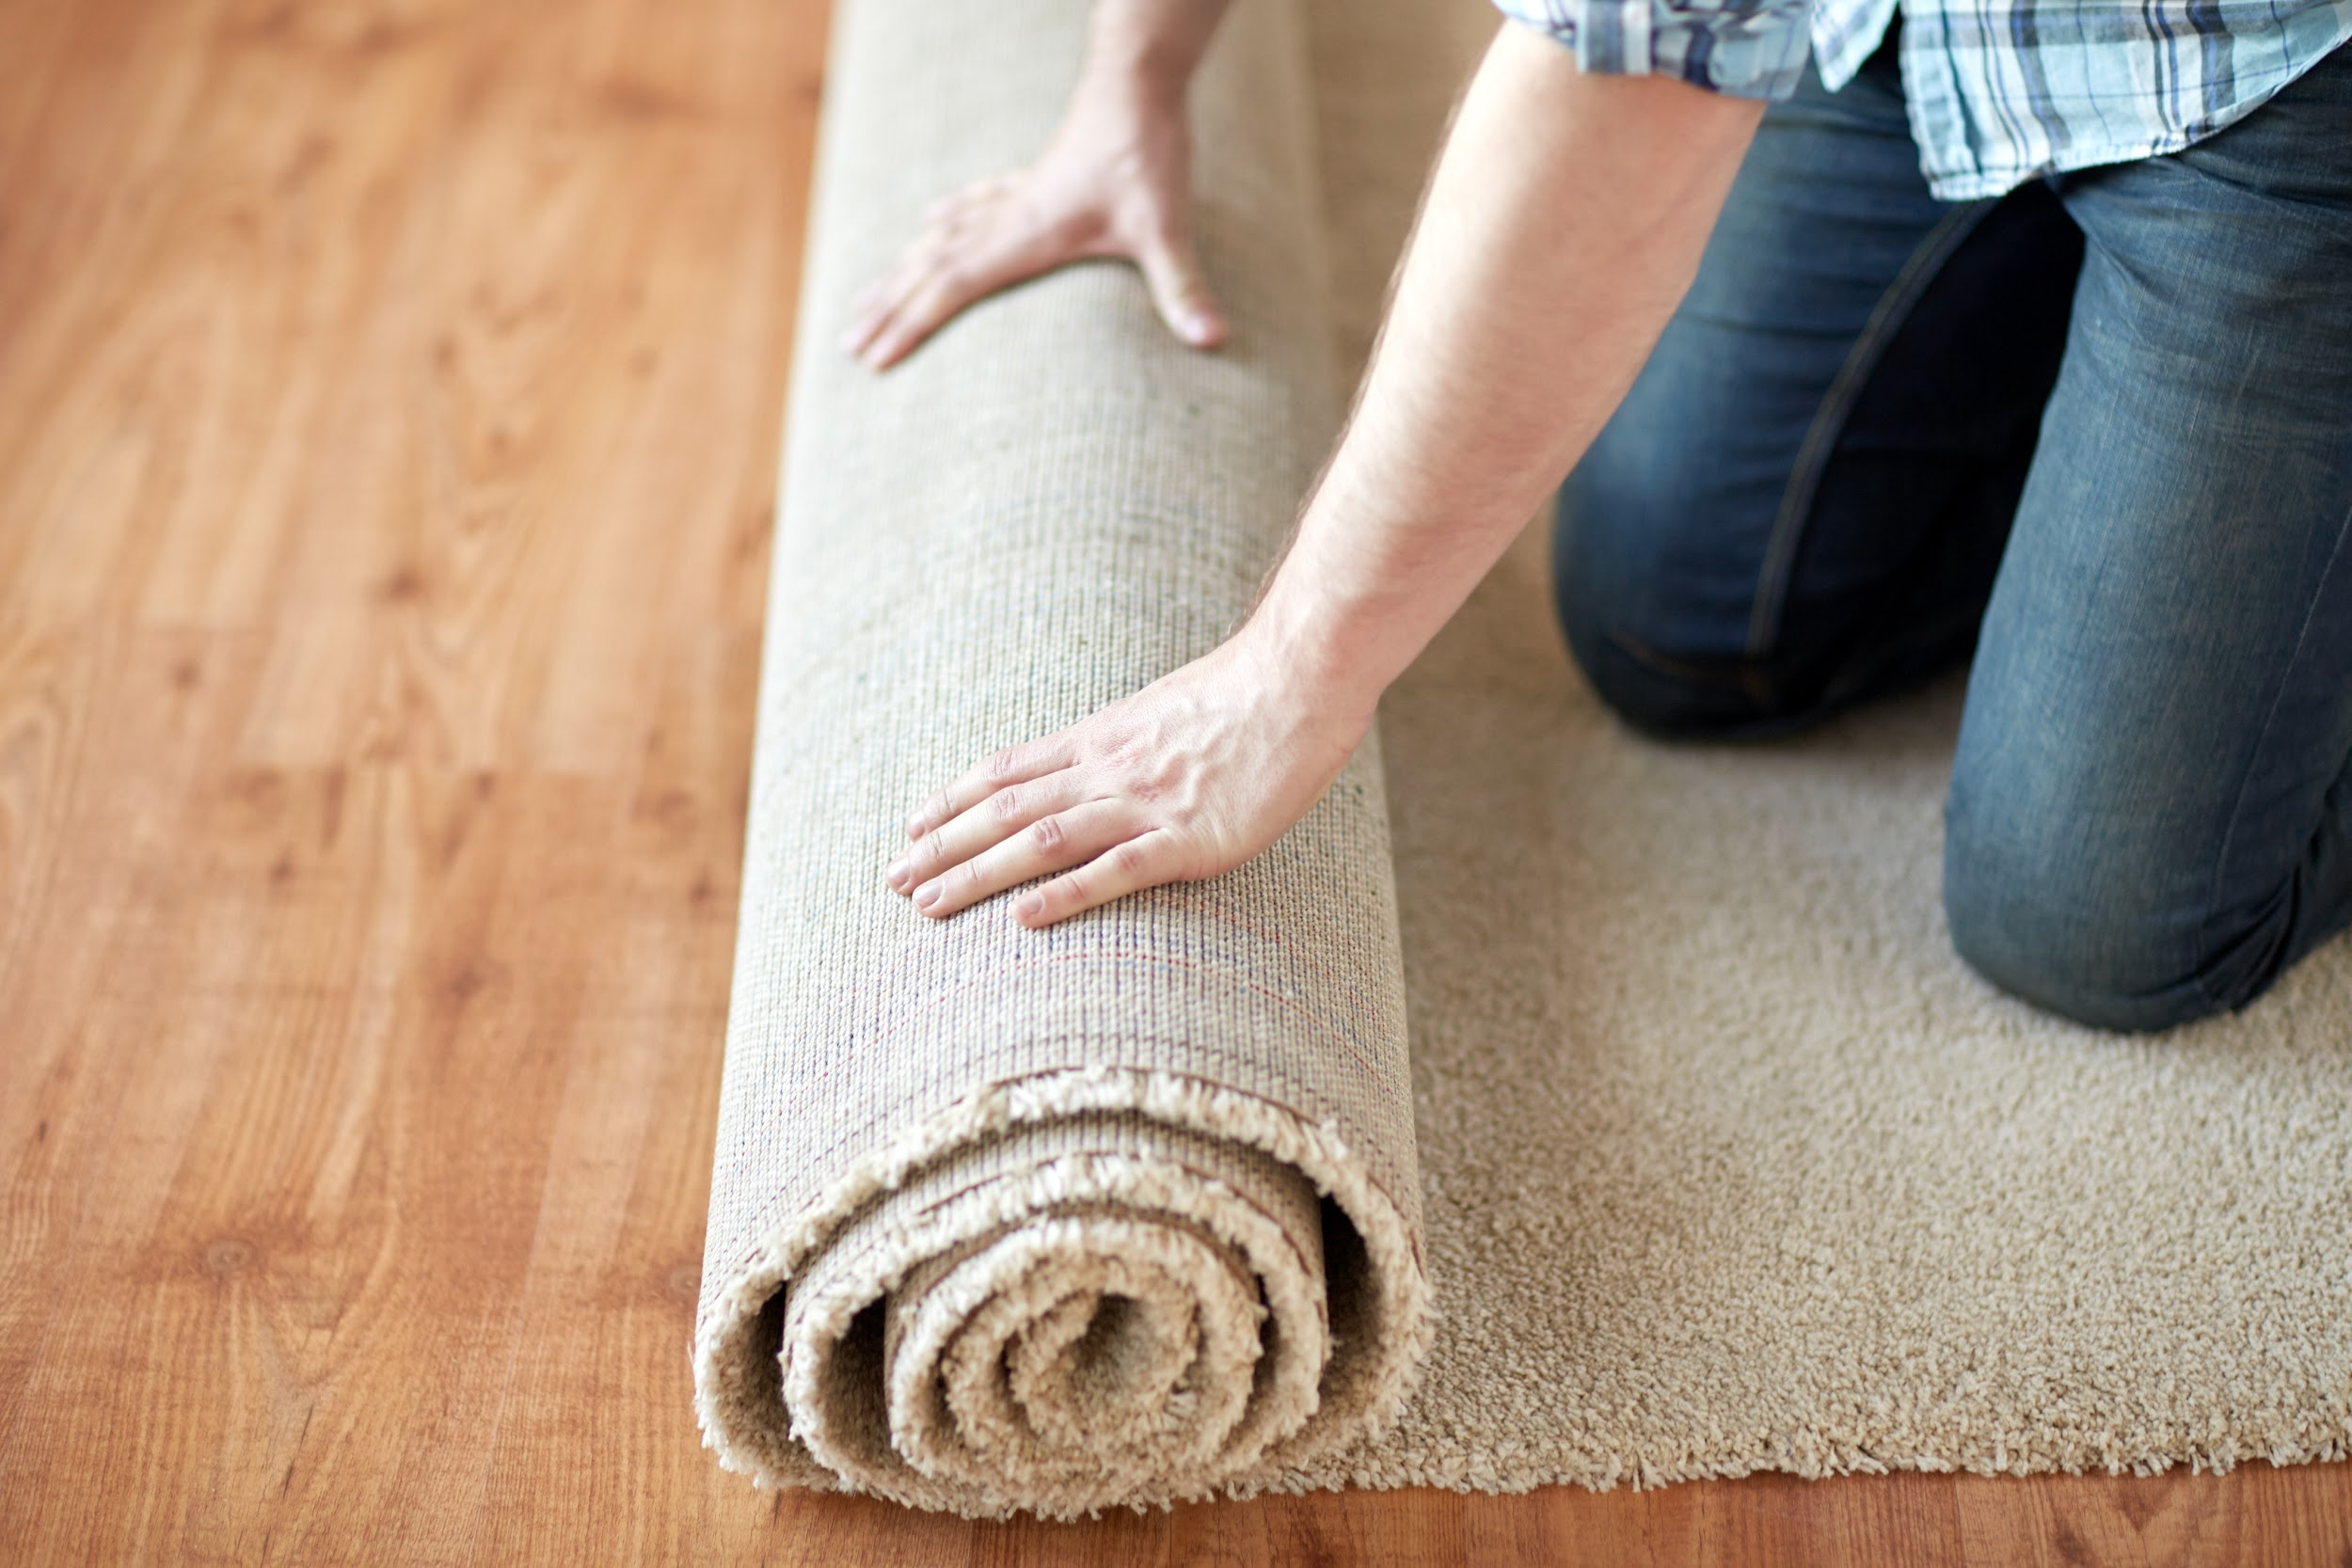 From Carpeting A Small Room To More Creative Ideas Find The Best Uses For Carpet Remnants In Your Home Then St Carpet Remnants Carpet Installation Carpet Tape